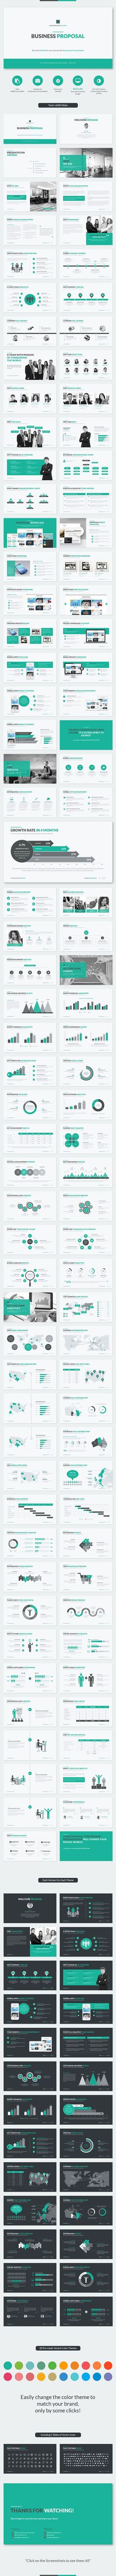 Business Proposal PowerPoint Template #design Download: http://graphicriver.net/item/business-proposal-powerpoint-template/11833931?ref=ksioks----- 다양한 ui페이지를 참고할수있다.